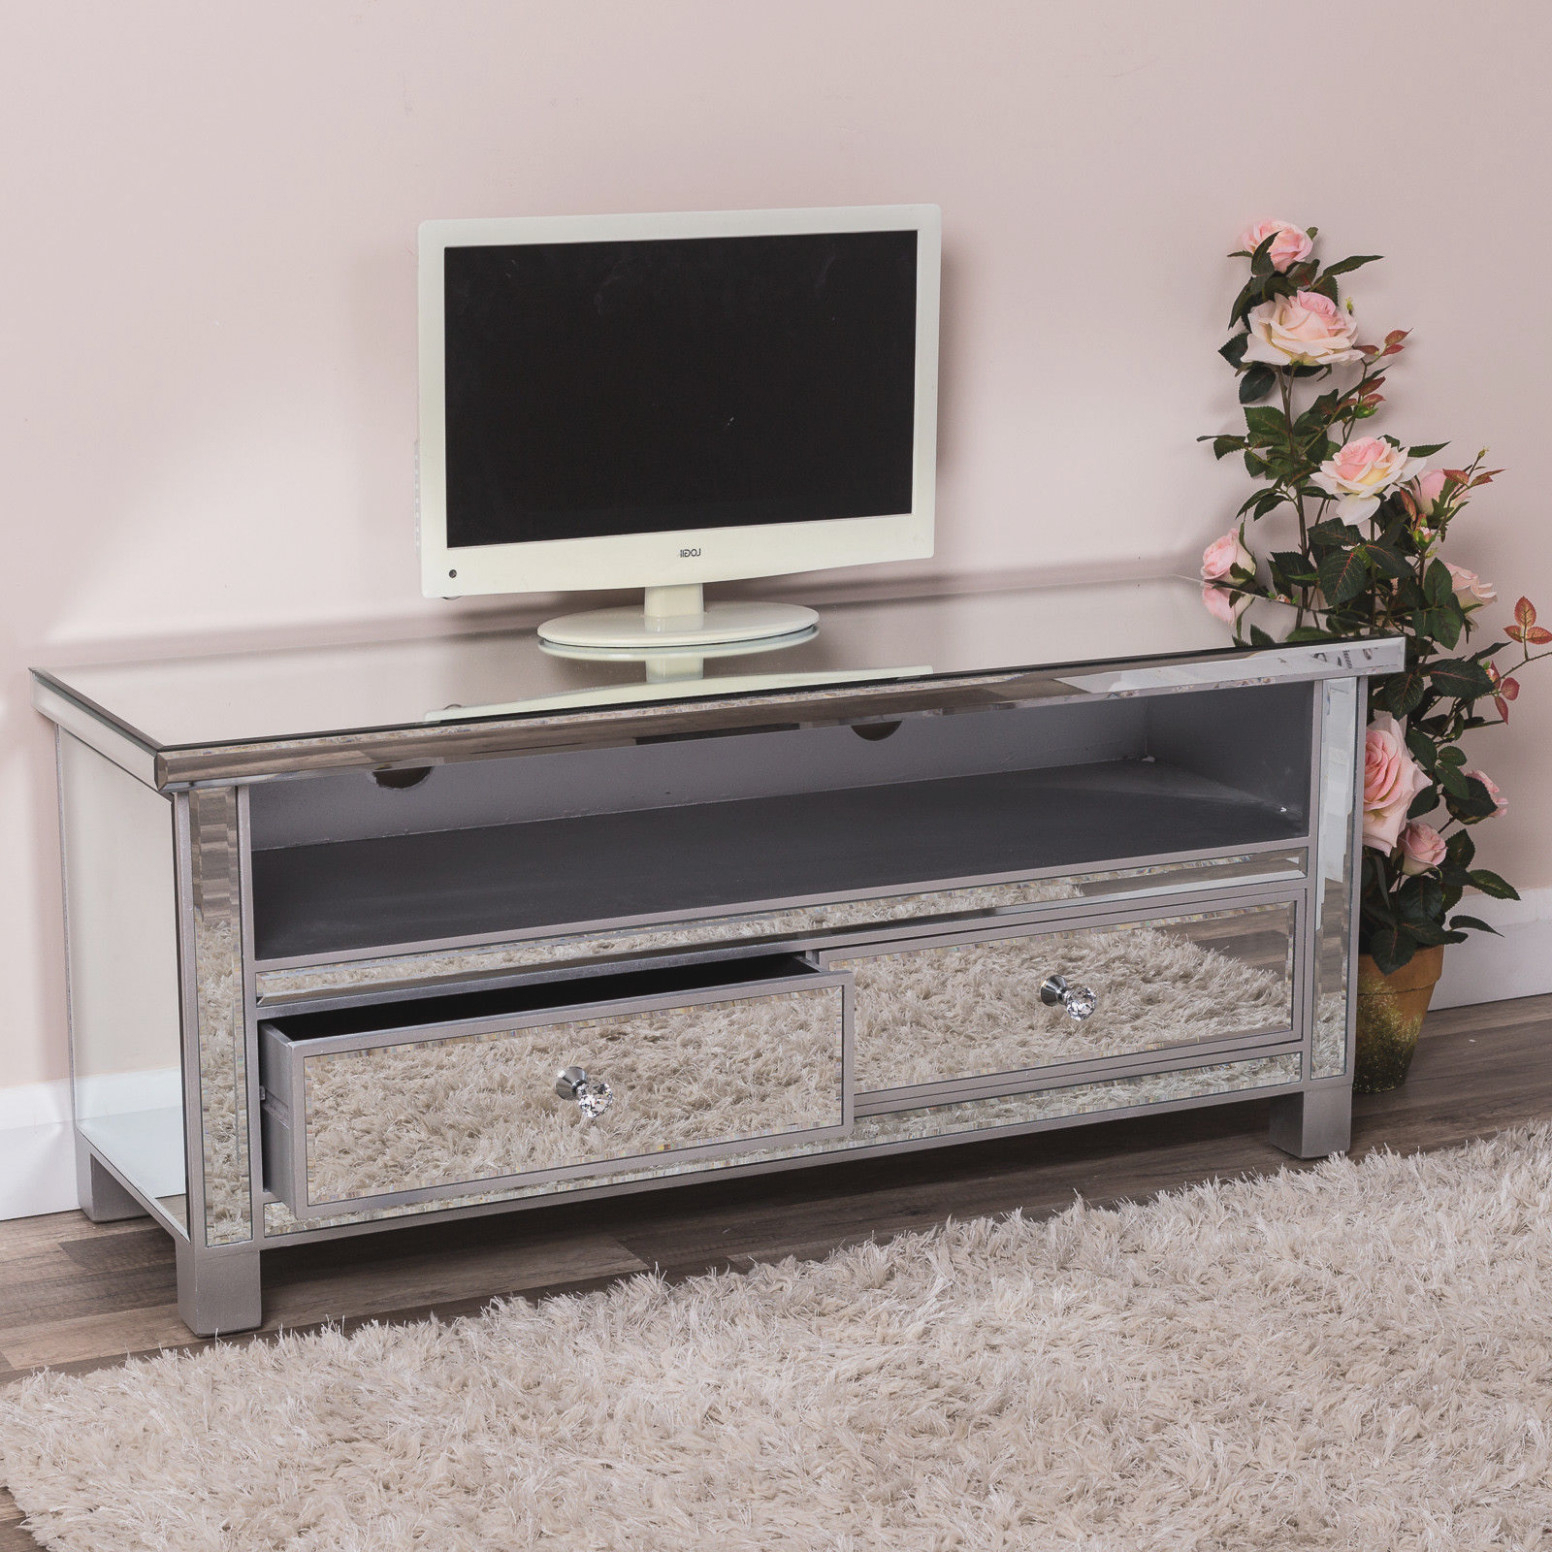 Famous Silver Tv Stands – Carolinacarconnections Regarding Silver Tv Stands (View 4 of 20)